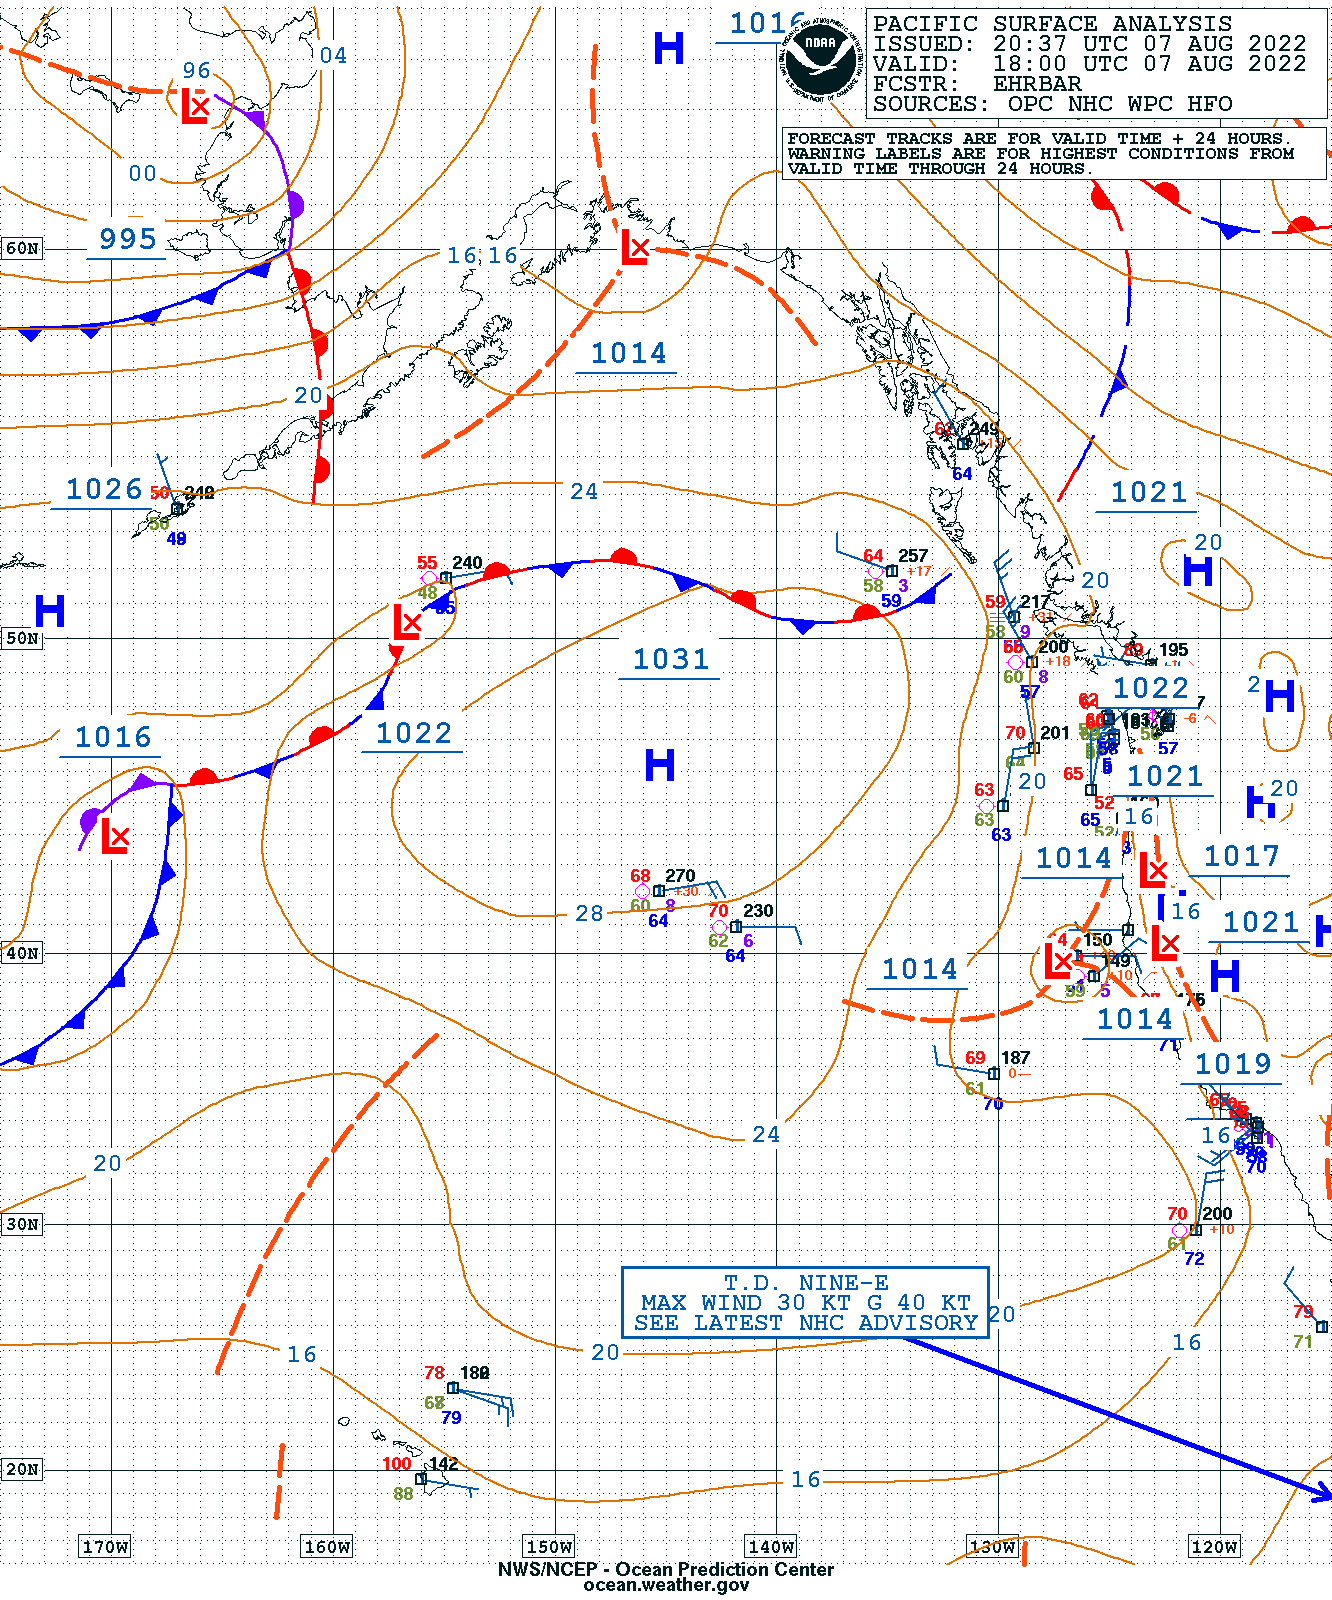 Eastern Pacific Surface Analysis